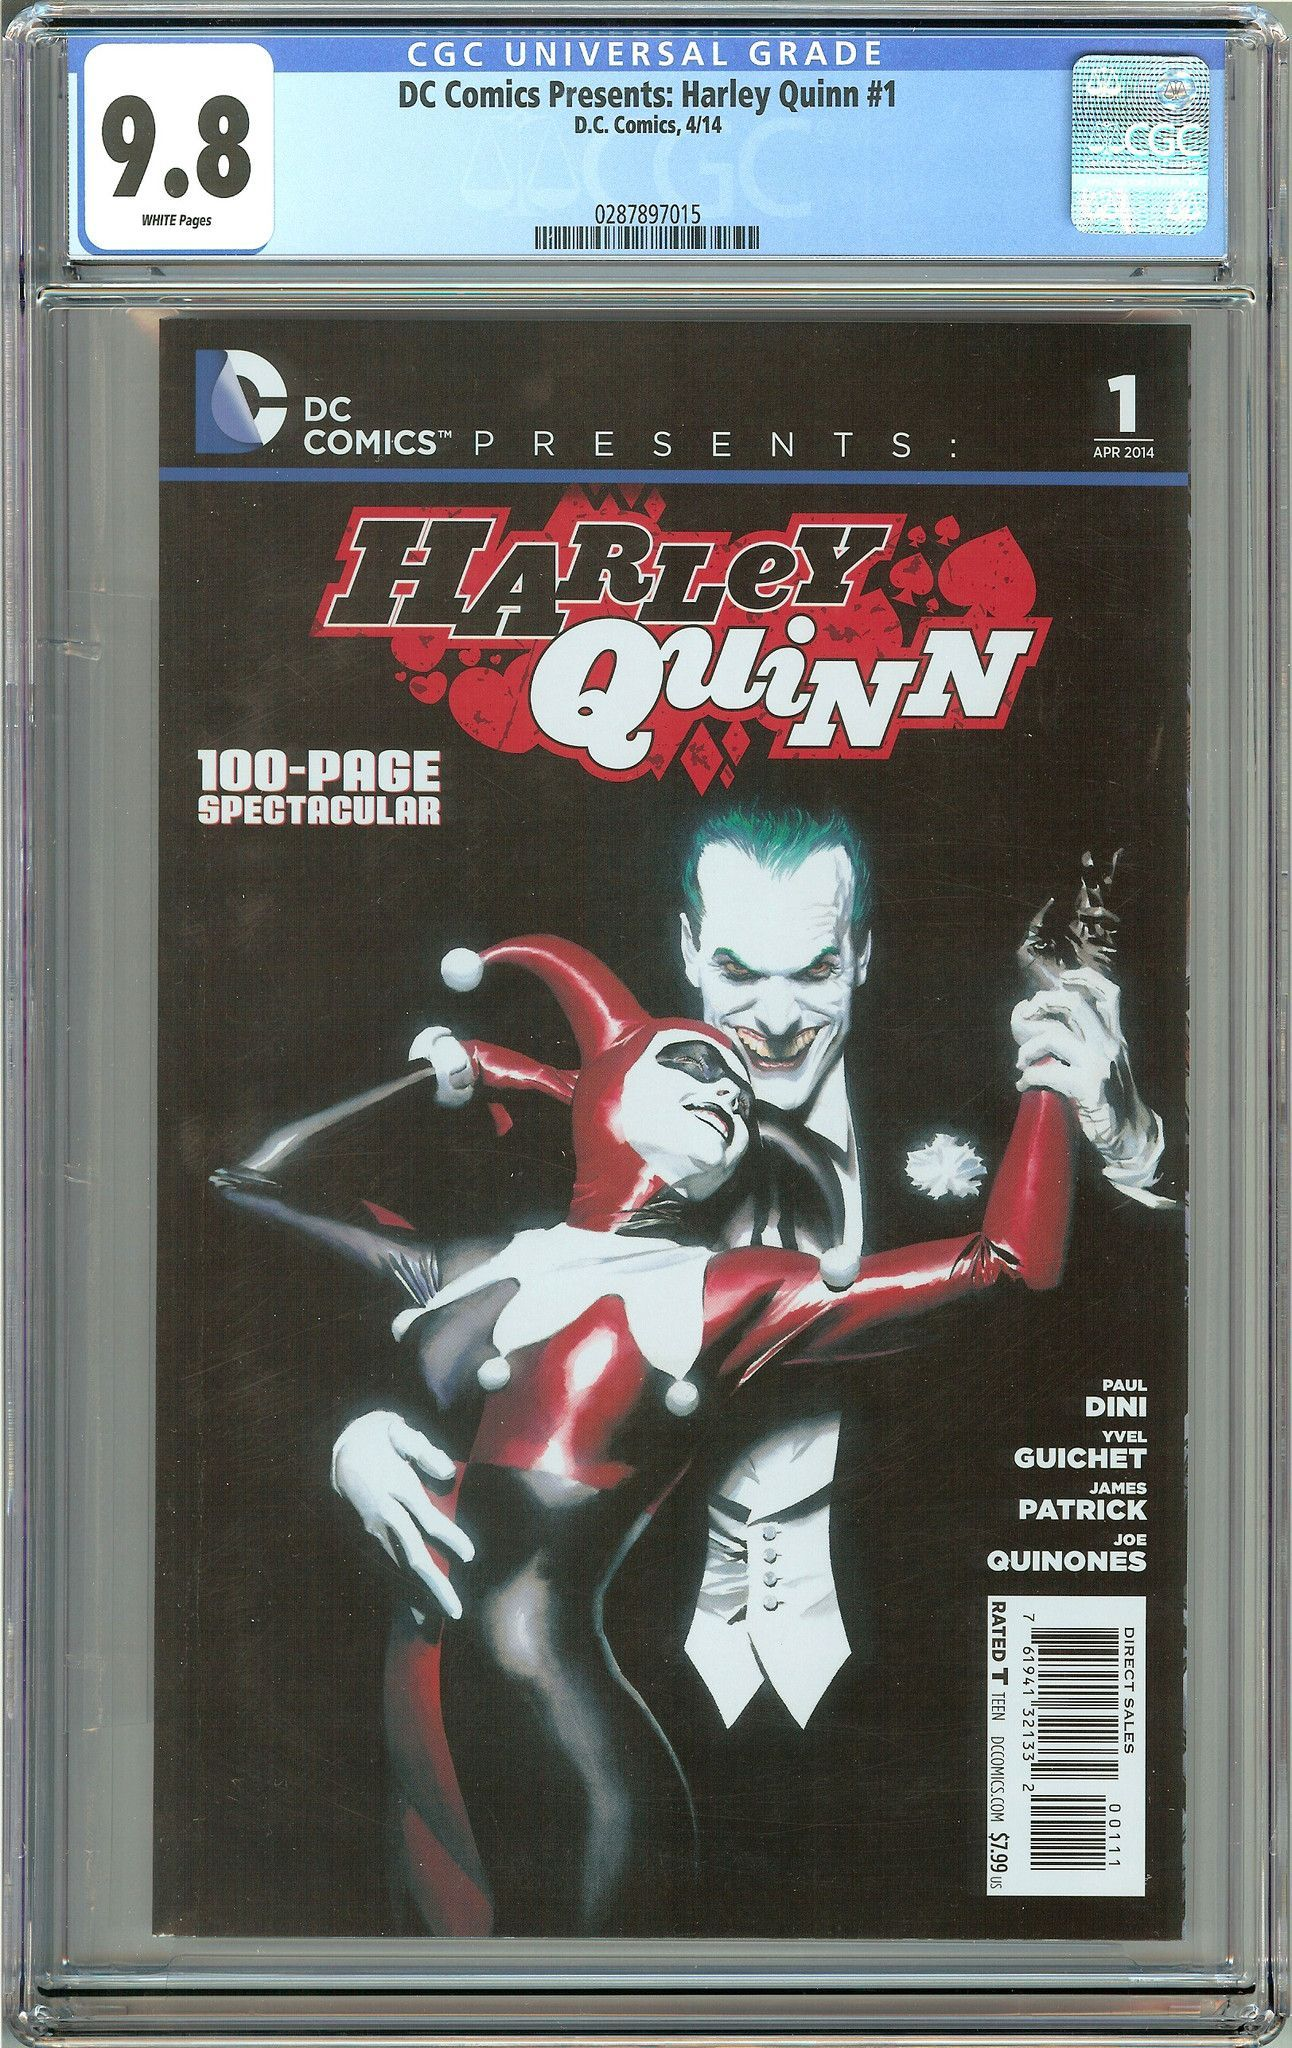 DC Comics Presents: Harley Quinn #1 (2014) CGC 9.8 White Pages 0287897015